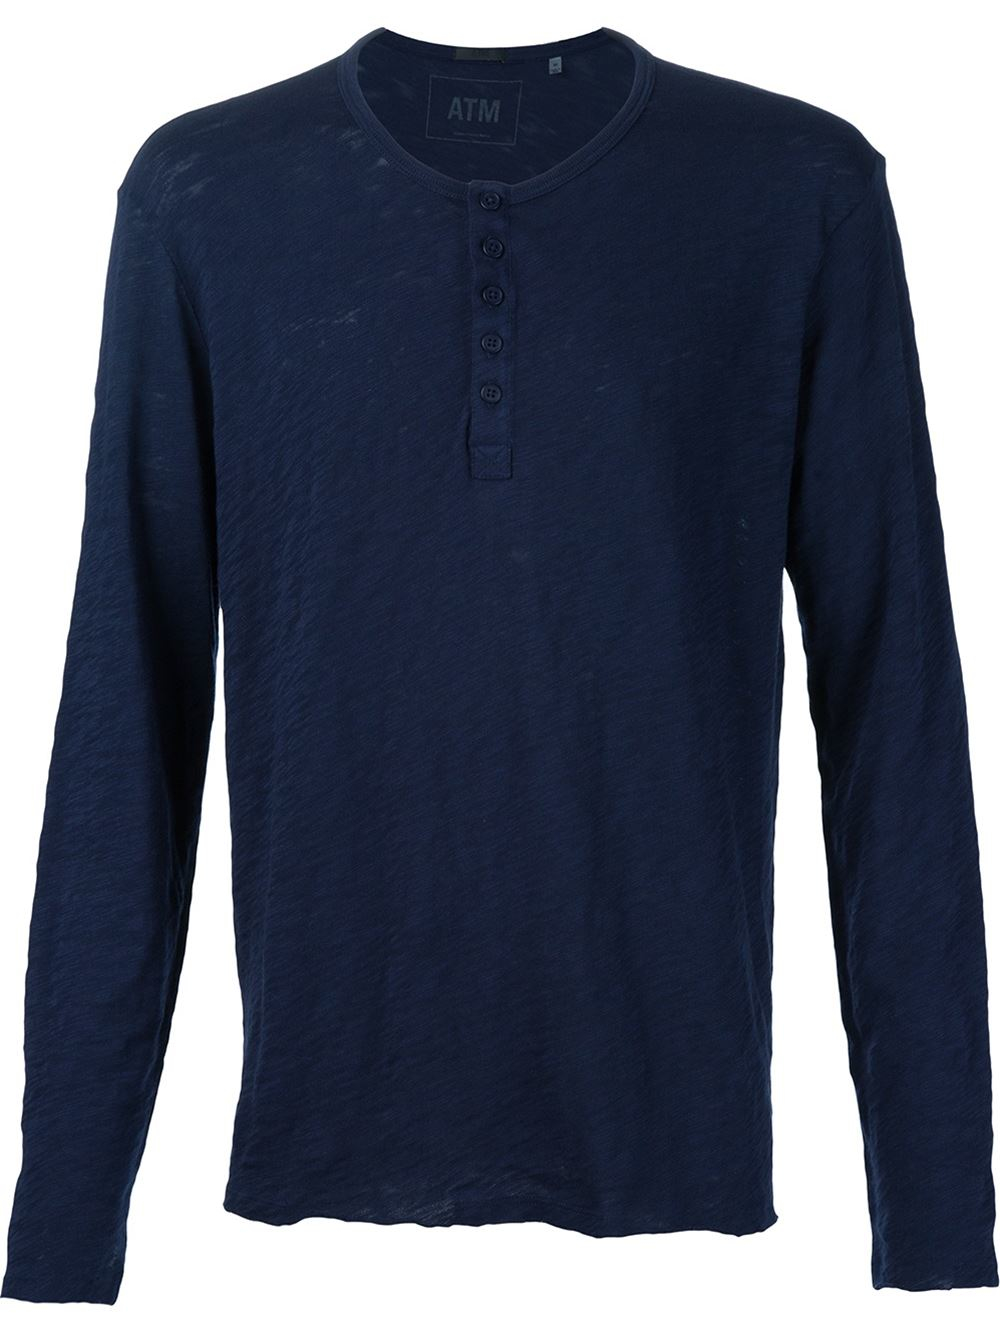 Atm Button Down T Shirt In Blue For Men Lyst